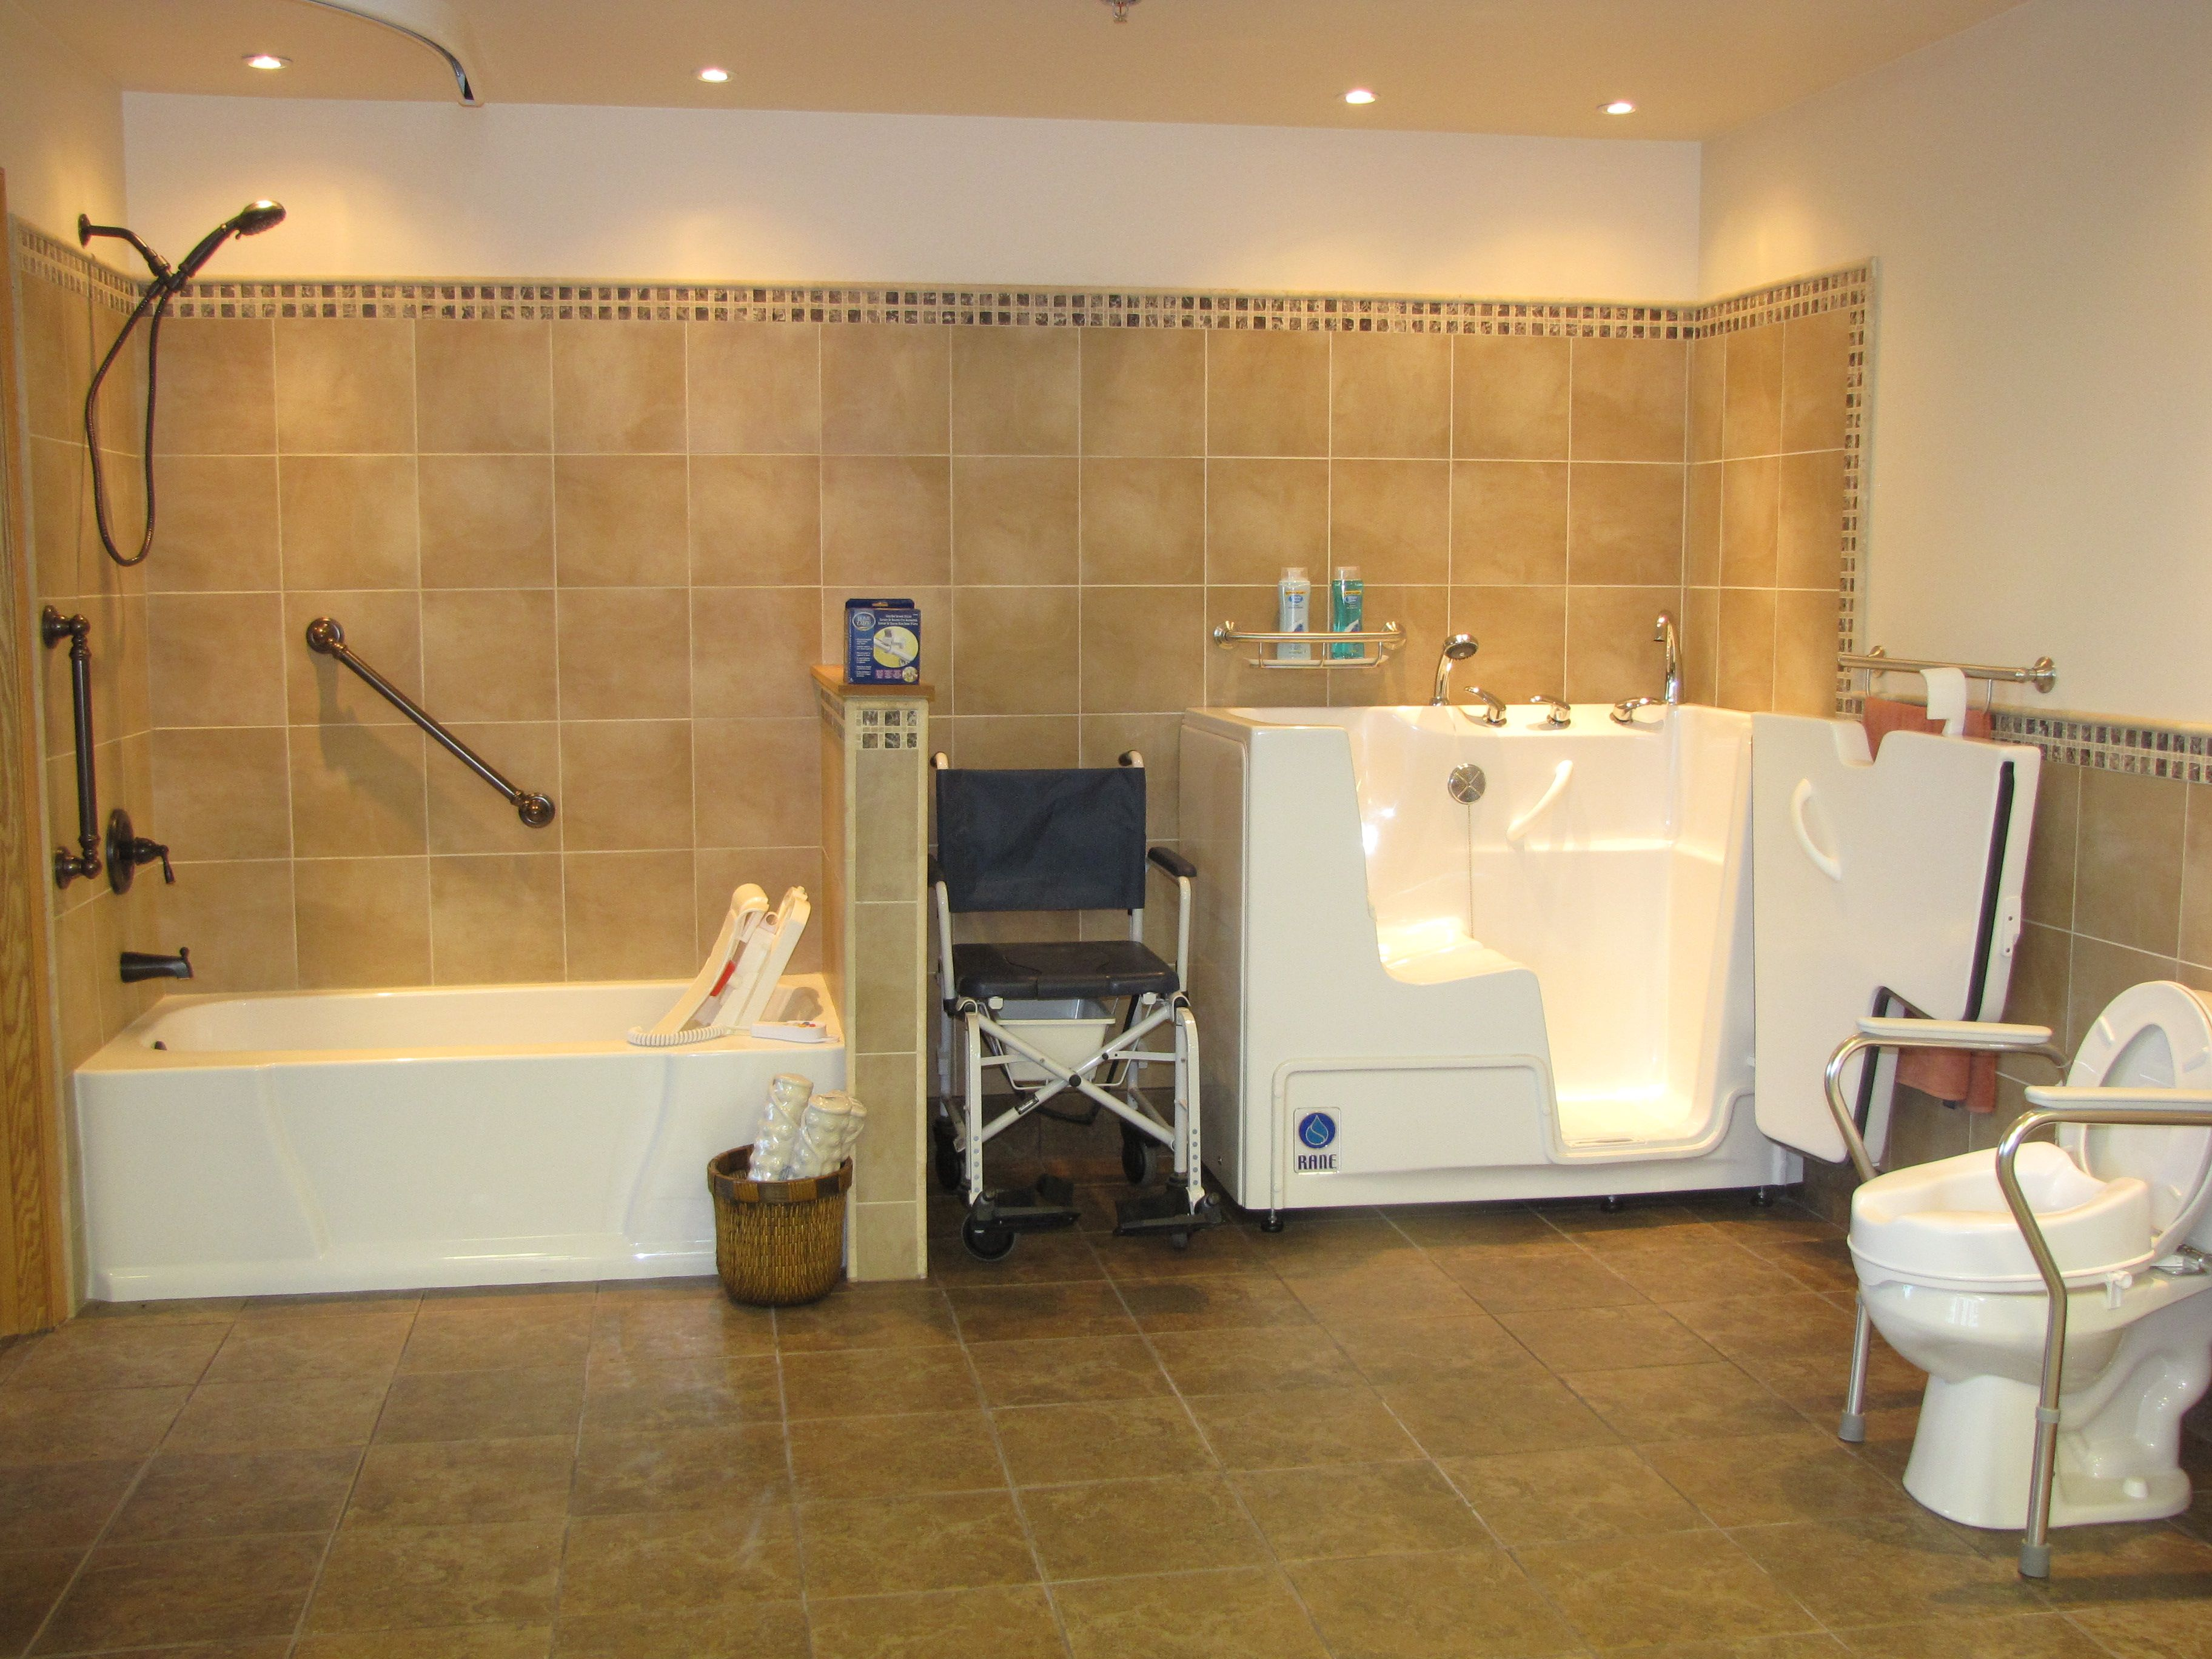 Pin by Disabled Bathrooms Pro on Disabled Bathroom Tips | Bathroom, Disabled bathroom, Bathroom ...